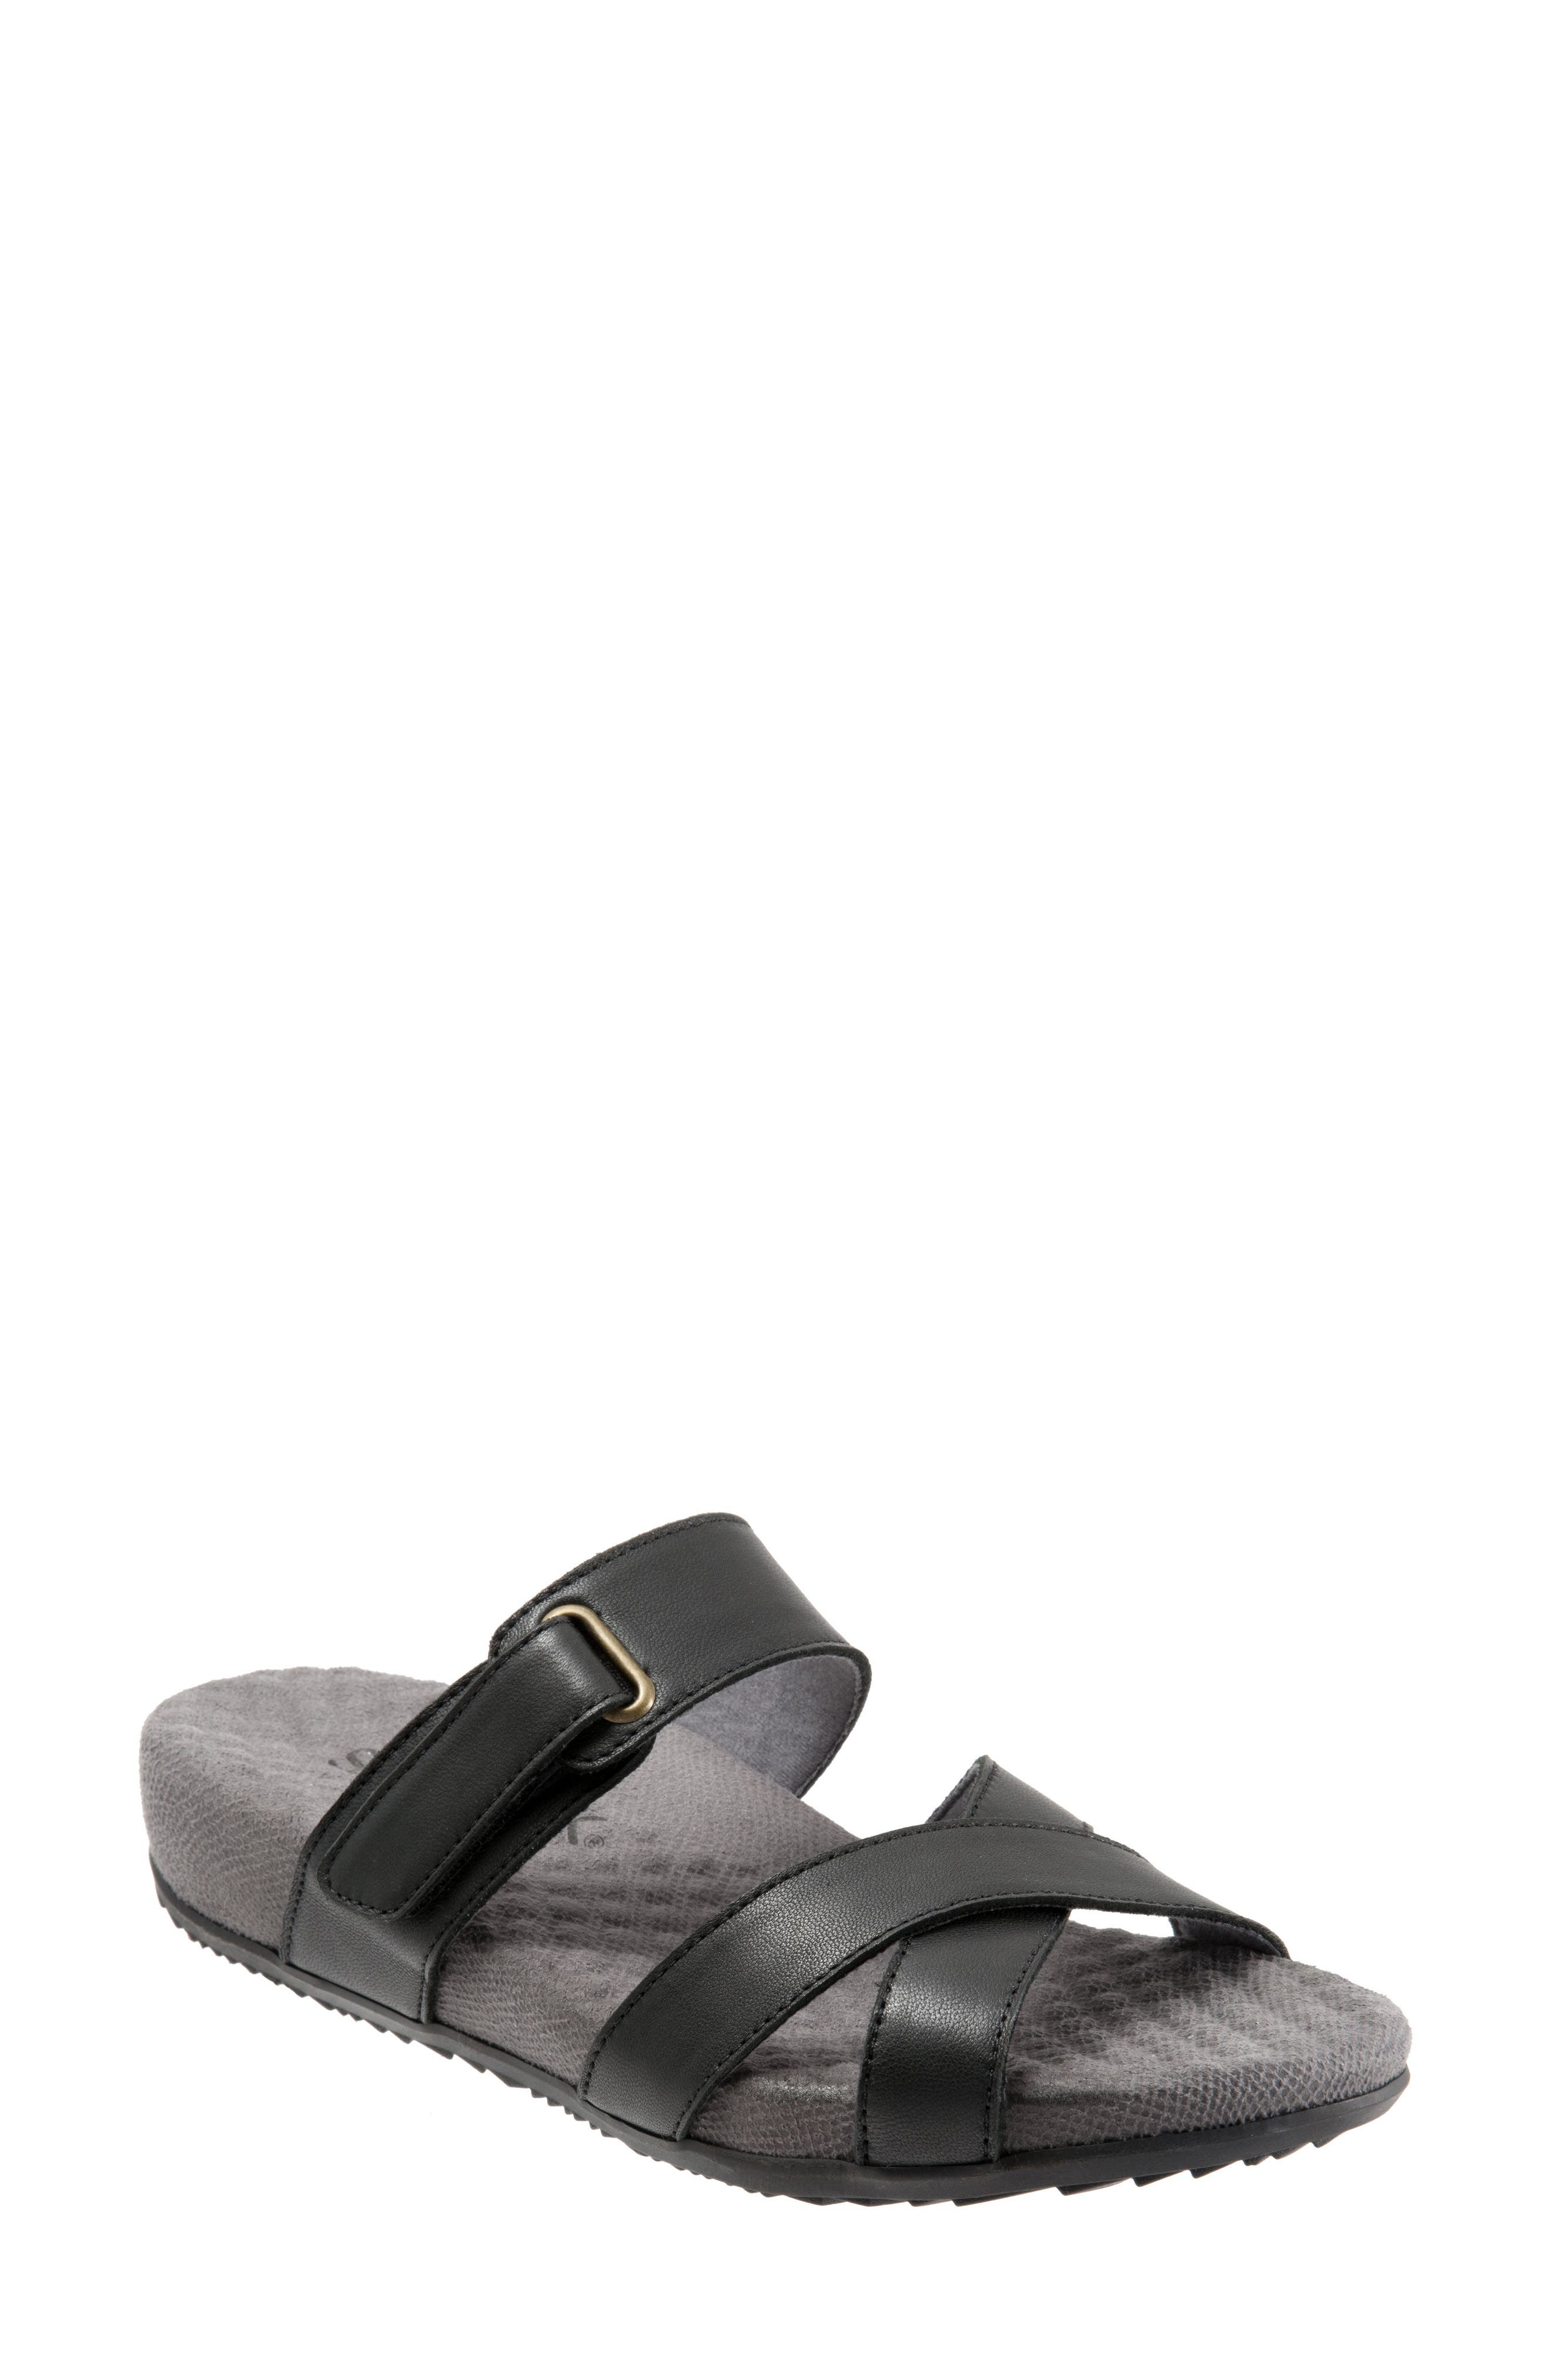 SOFTWALK<SUP>®</SUP>, Brimley Sandal, Main thumbnail 1, color, BLACK LEATHER